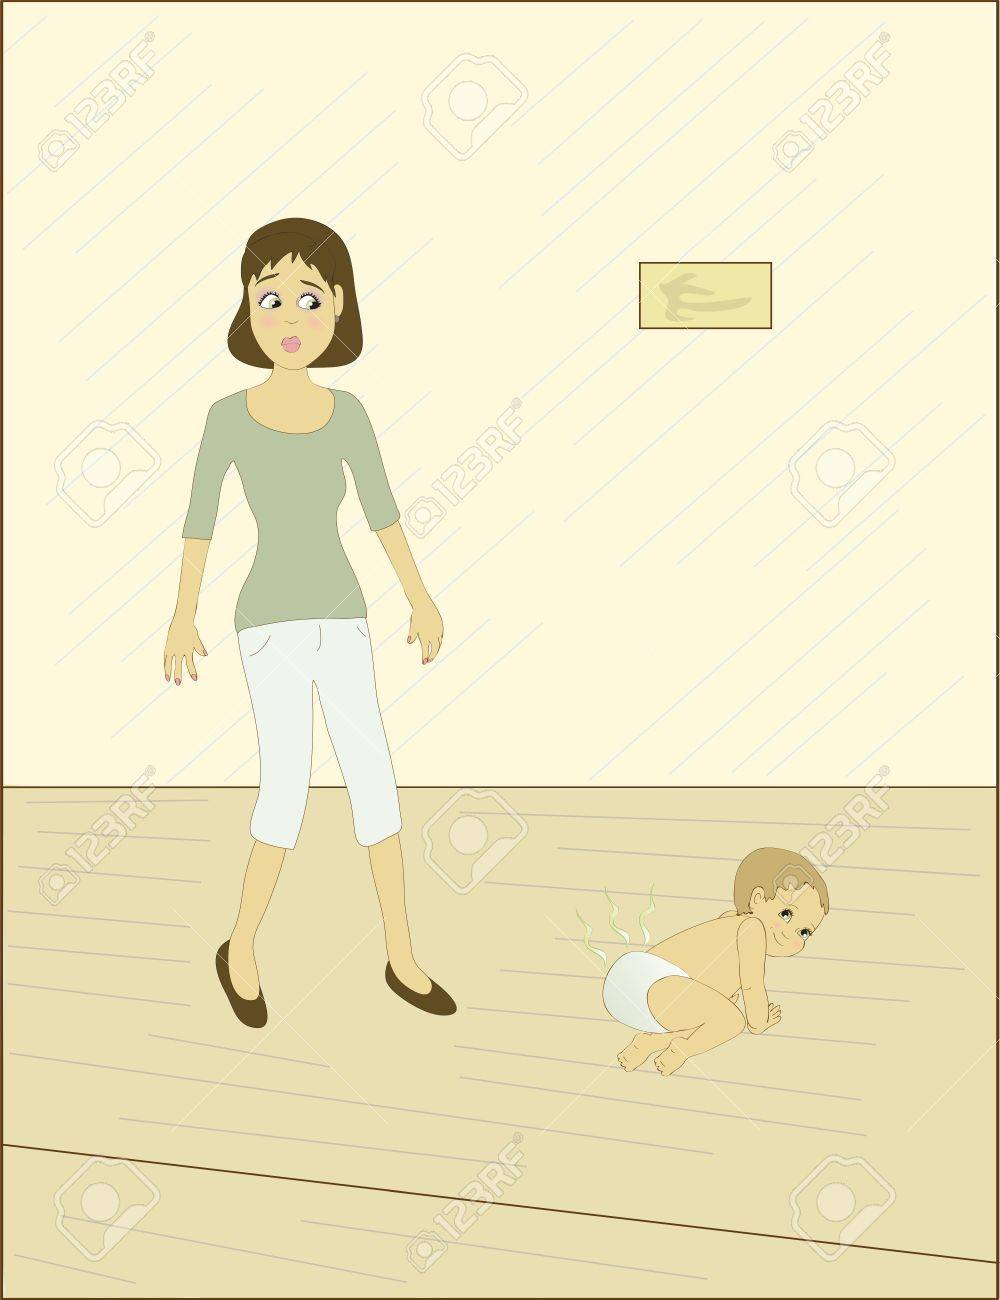 Baby in Diaper Walking a Mom Walking by a Baby With a